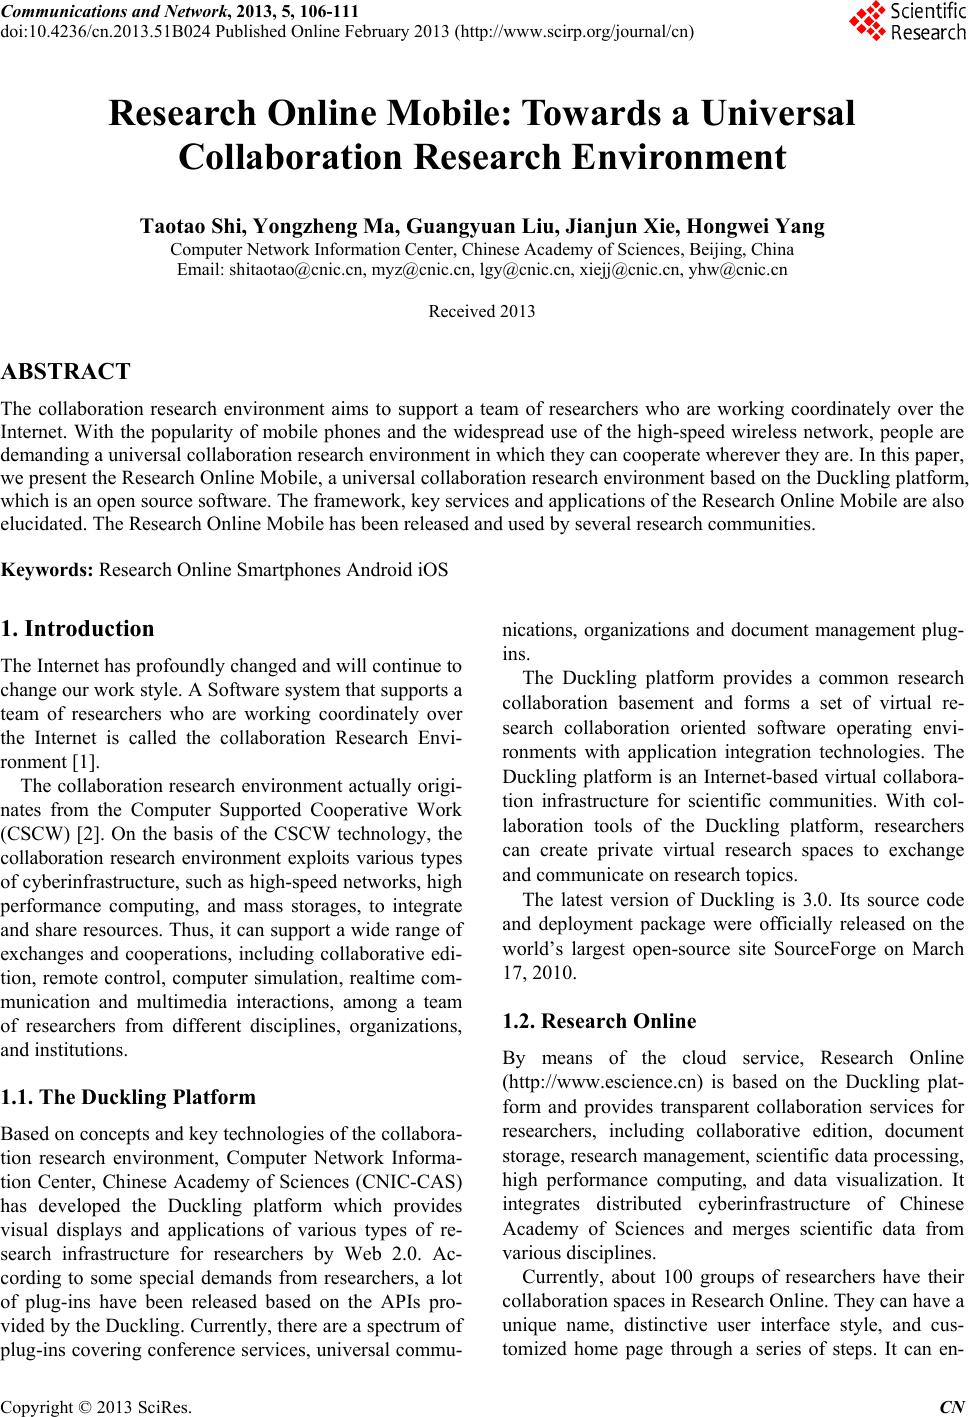 Research Online Mobile: Towards a Universal Collaboration Research